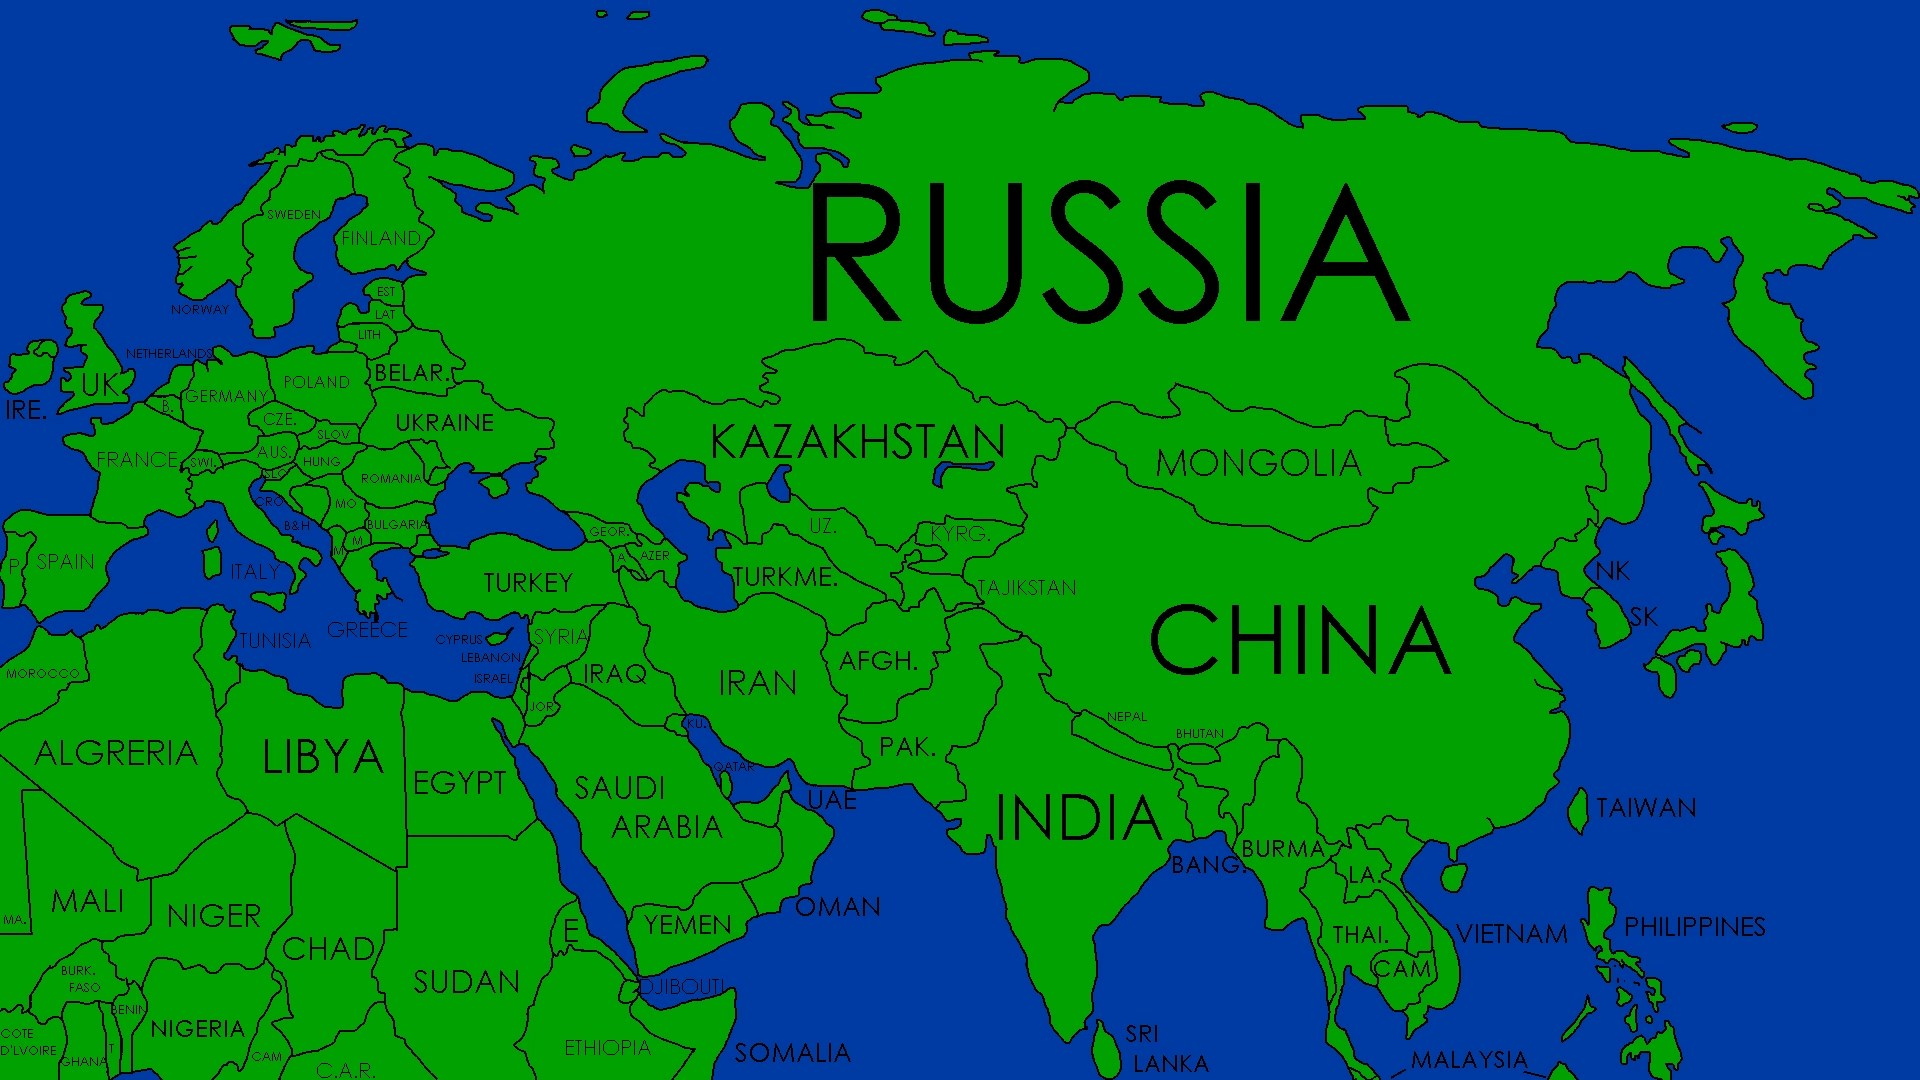 Countries In Afro Eurasia - Year of Clean Water on map of ur, map of british isles, map of european russia, map of australia, map of antarctica, map of eurasia with countries, map of americas, map of northern eurasia countries, map of africa, map of continent, map of oceania, map of eurasia only,